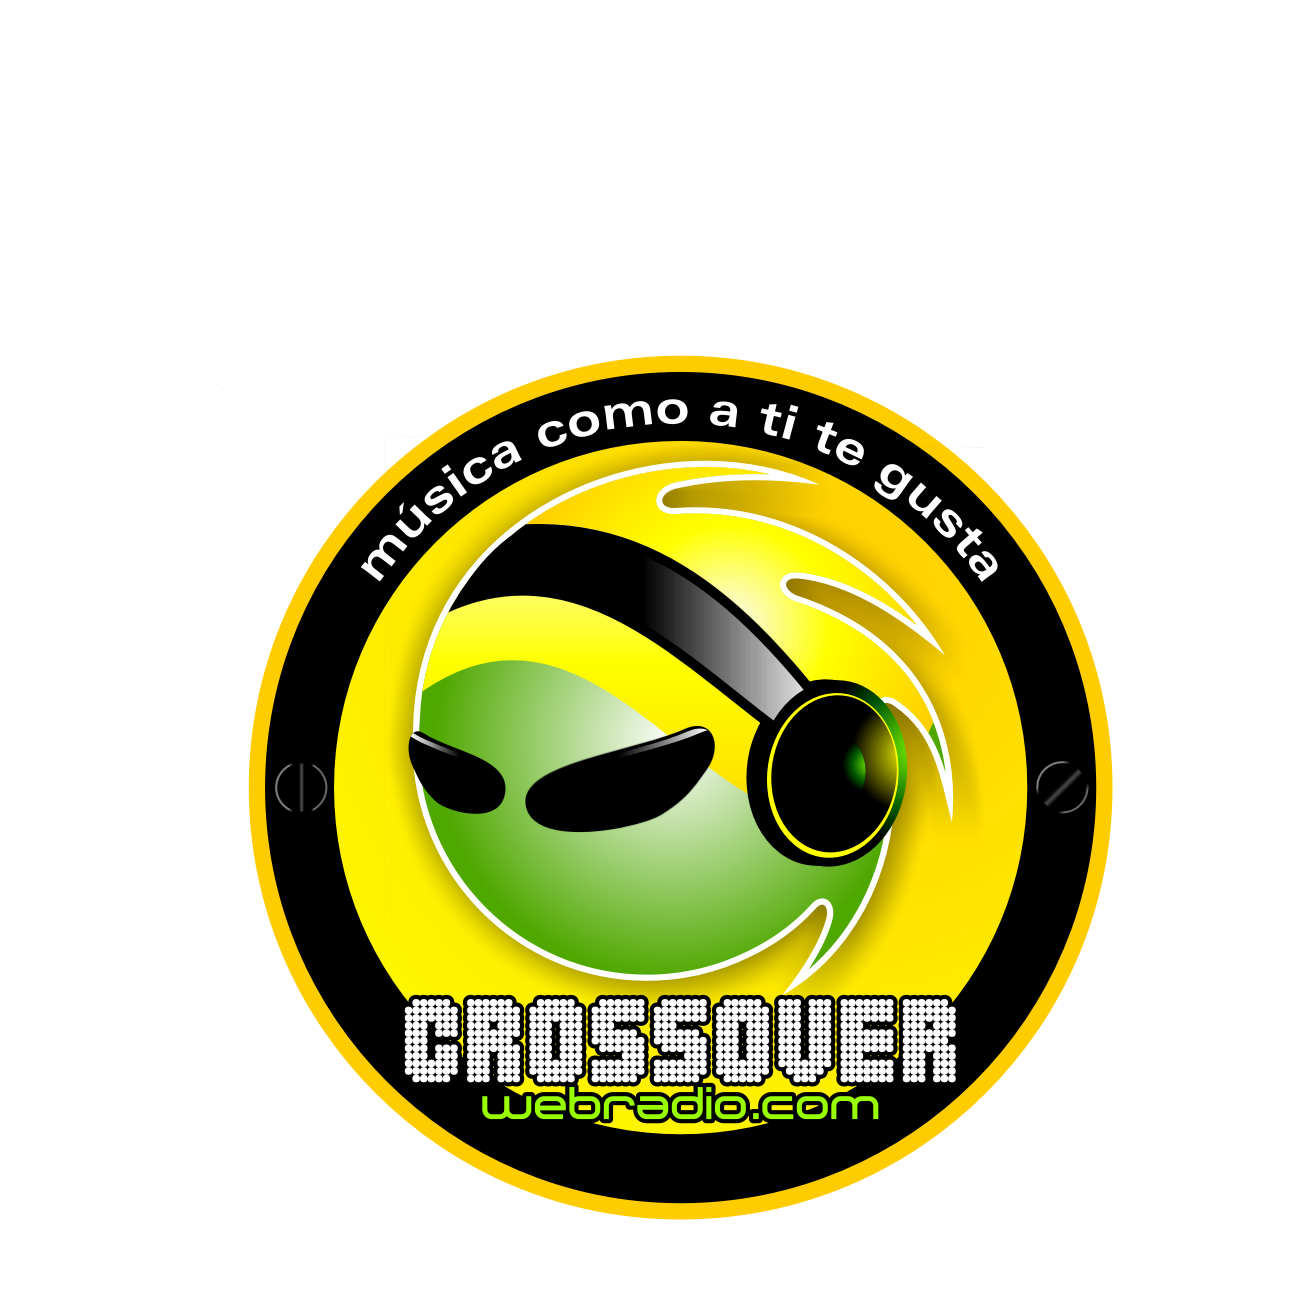 CrossoverWebRadio